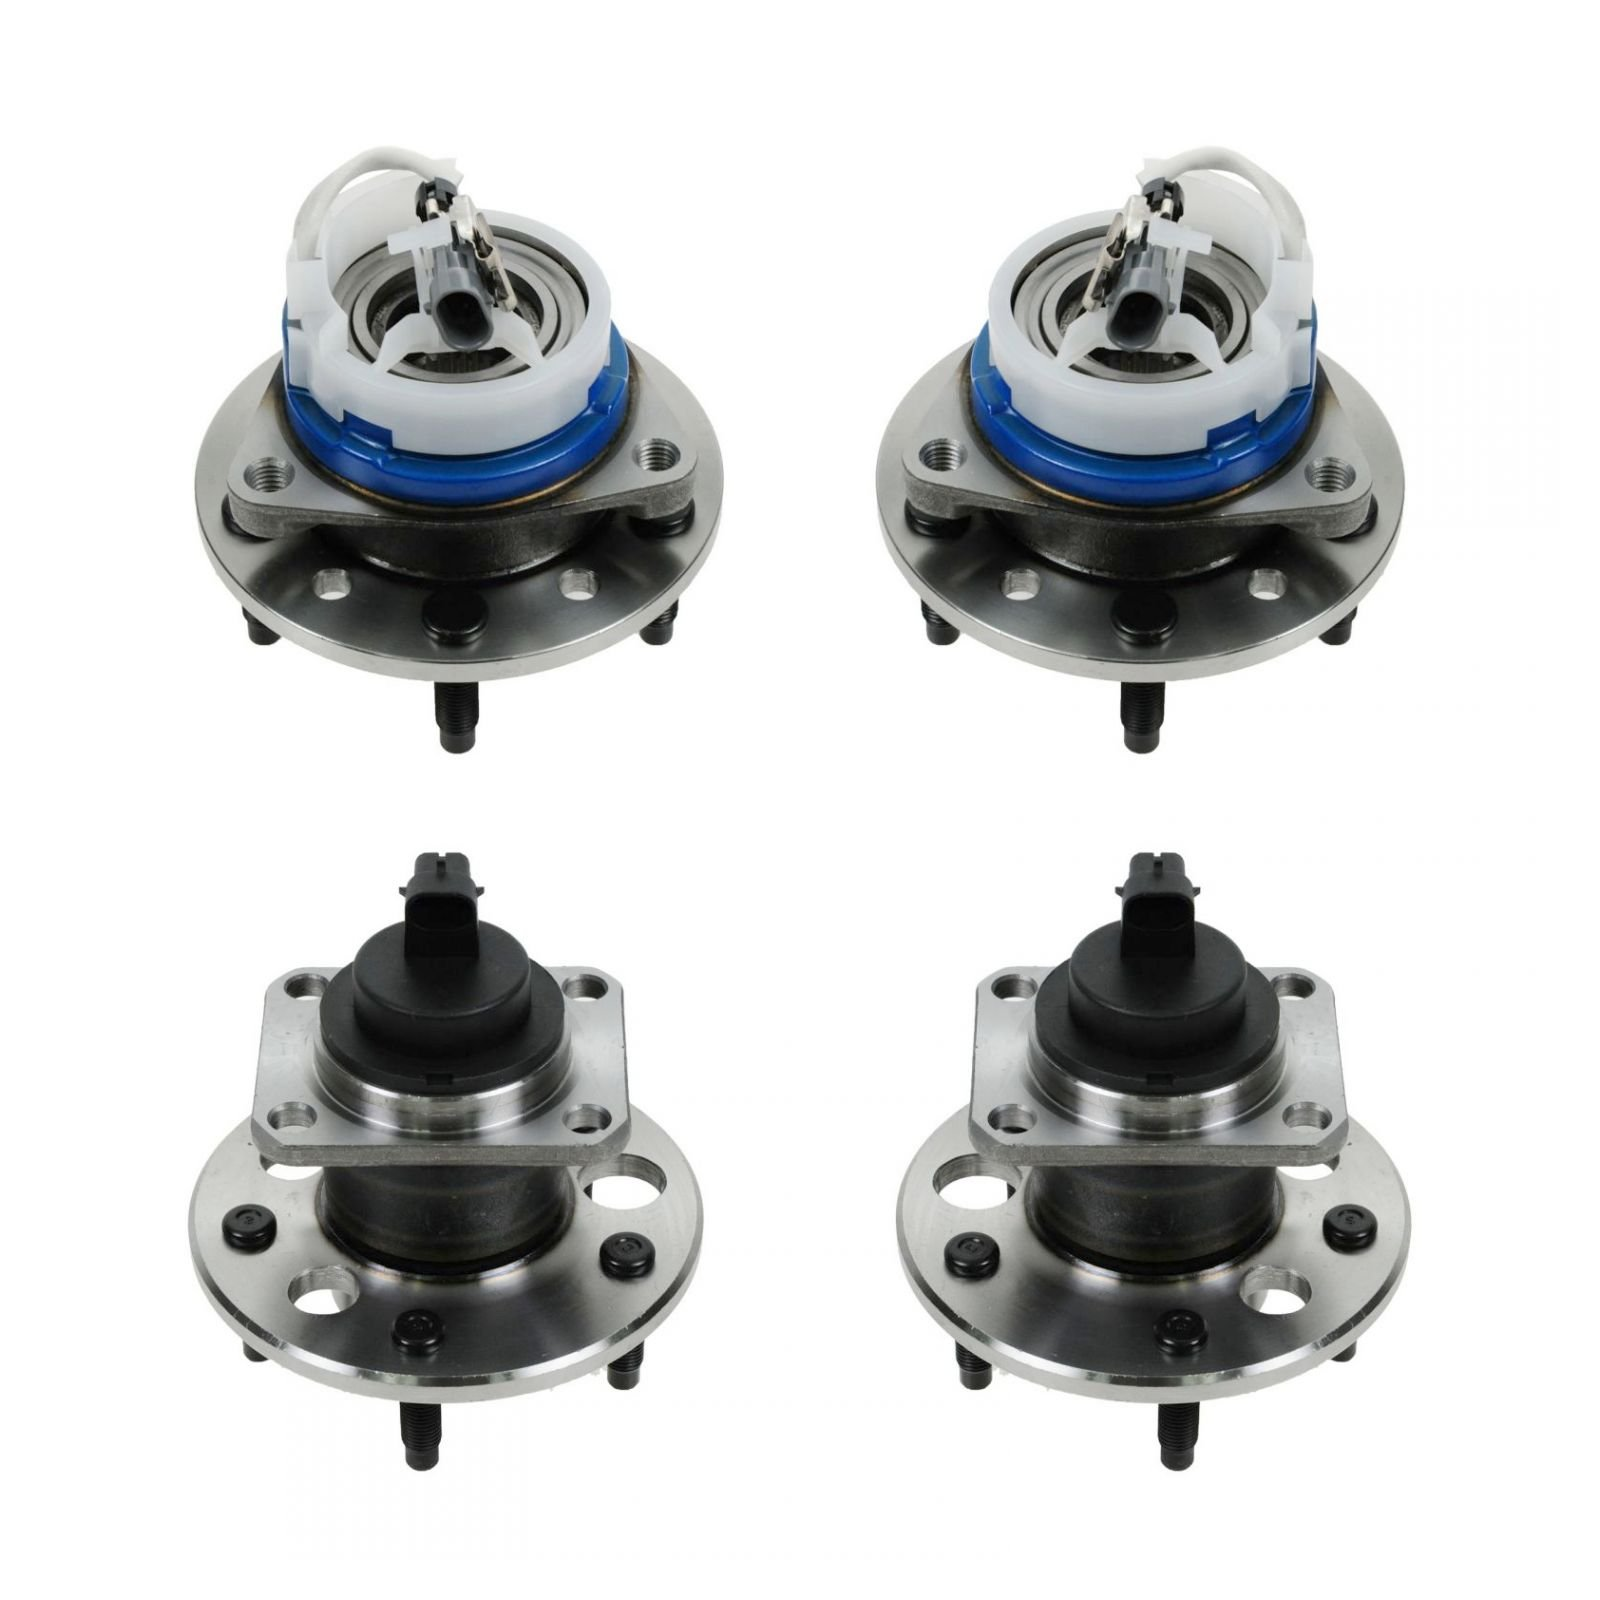 Wheel Bearing & Hub Front & Rear Assembly Kit Set of 4 for Chevy Olds Pontiac